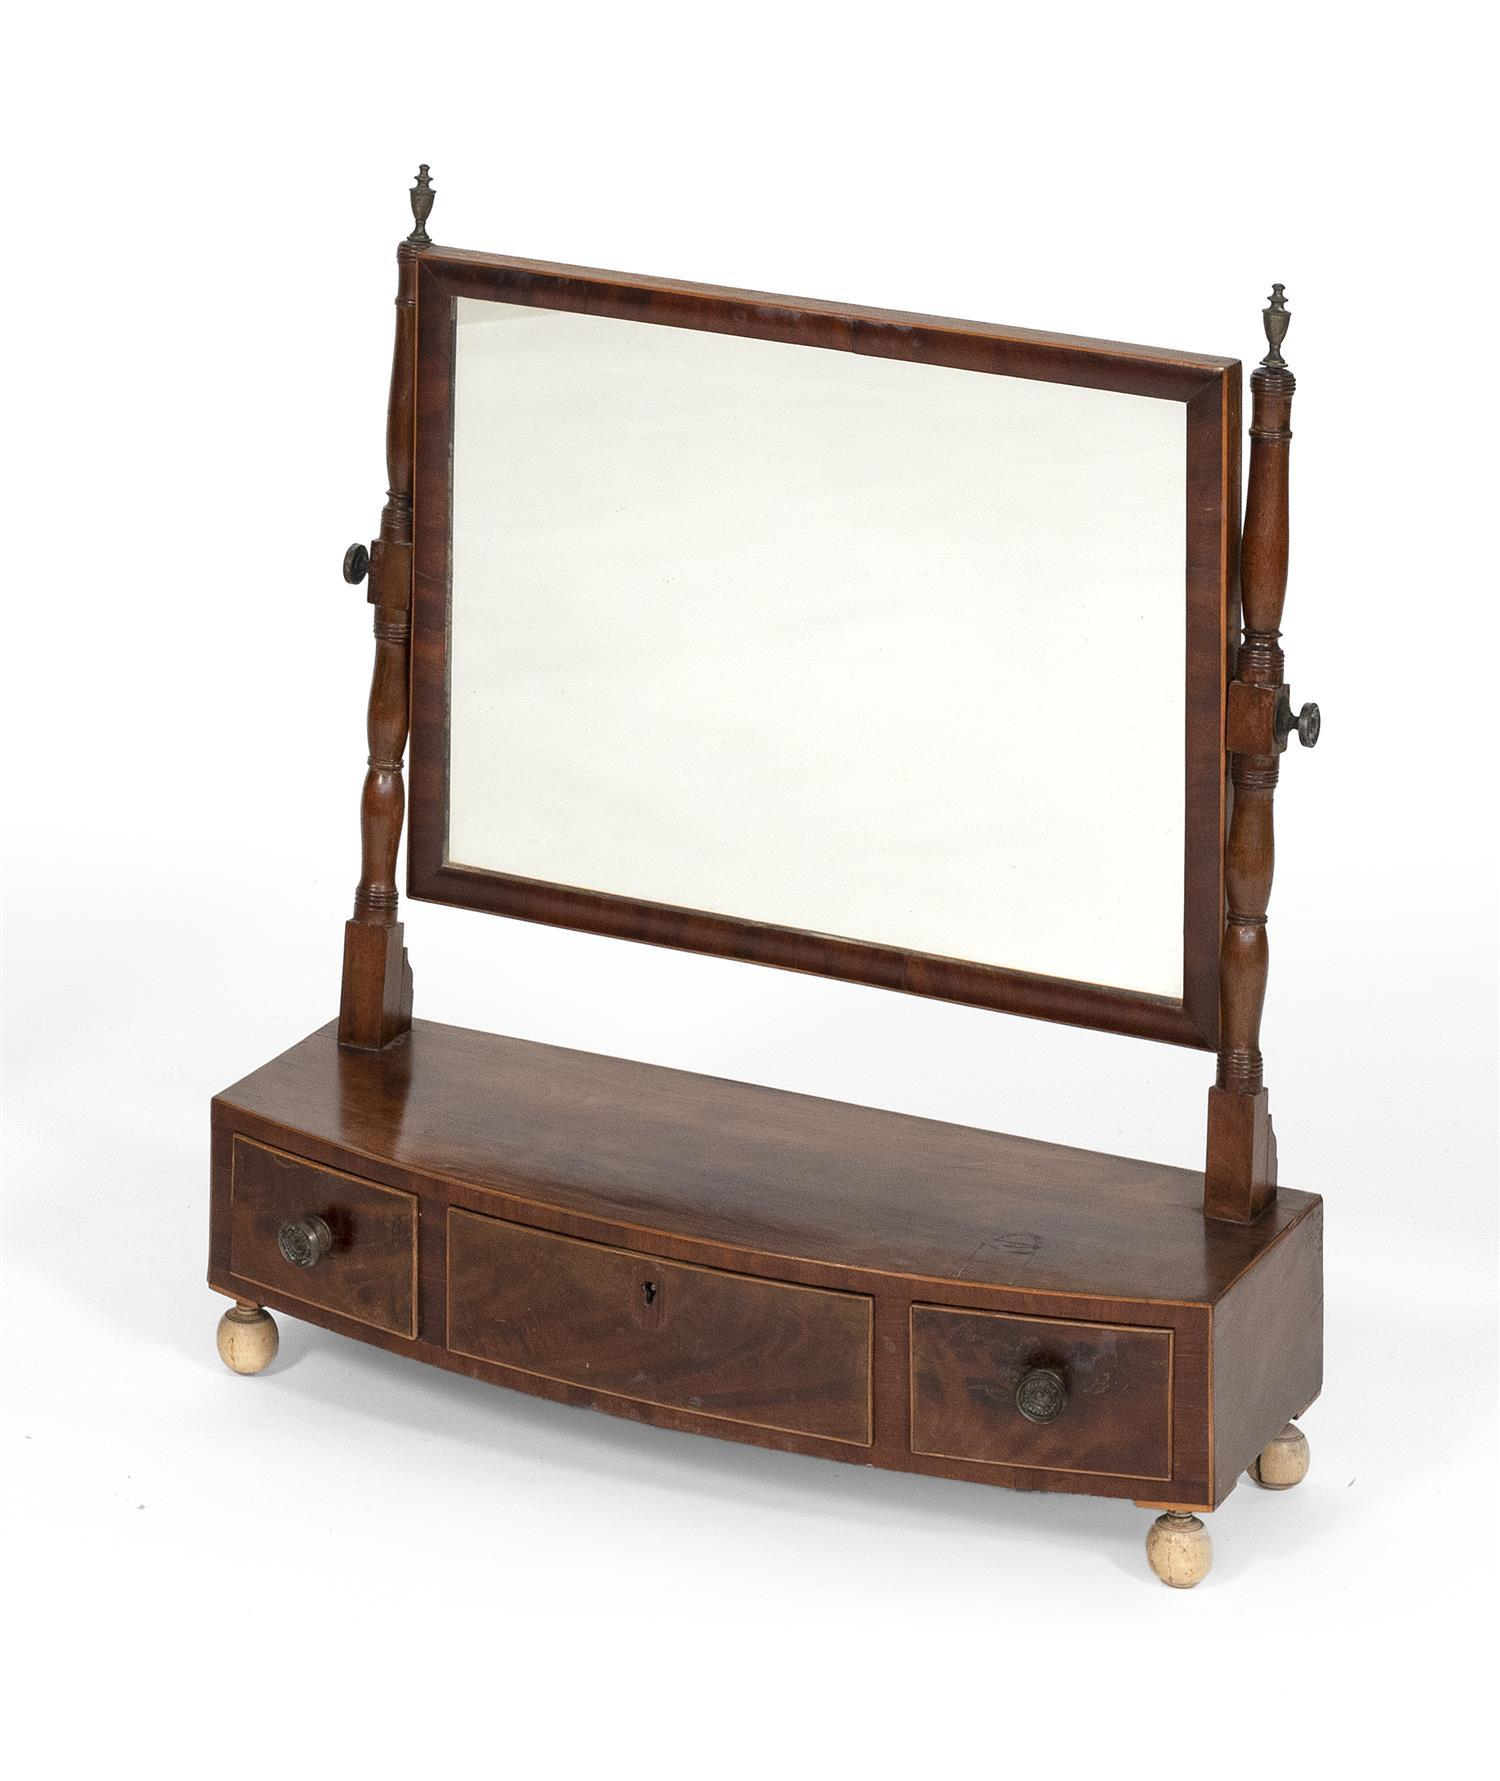 GEORGE III SHAVING MIRROR In mahogany and mahogany veneer with string inlay along perimeter. Rectangular mirror with turned supports...